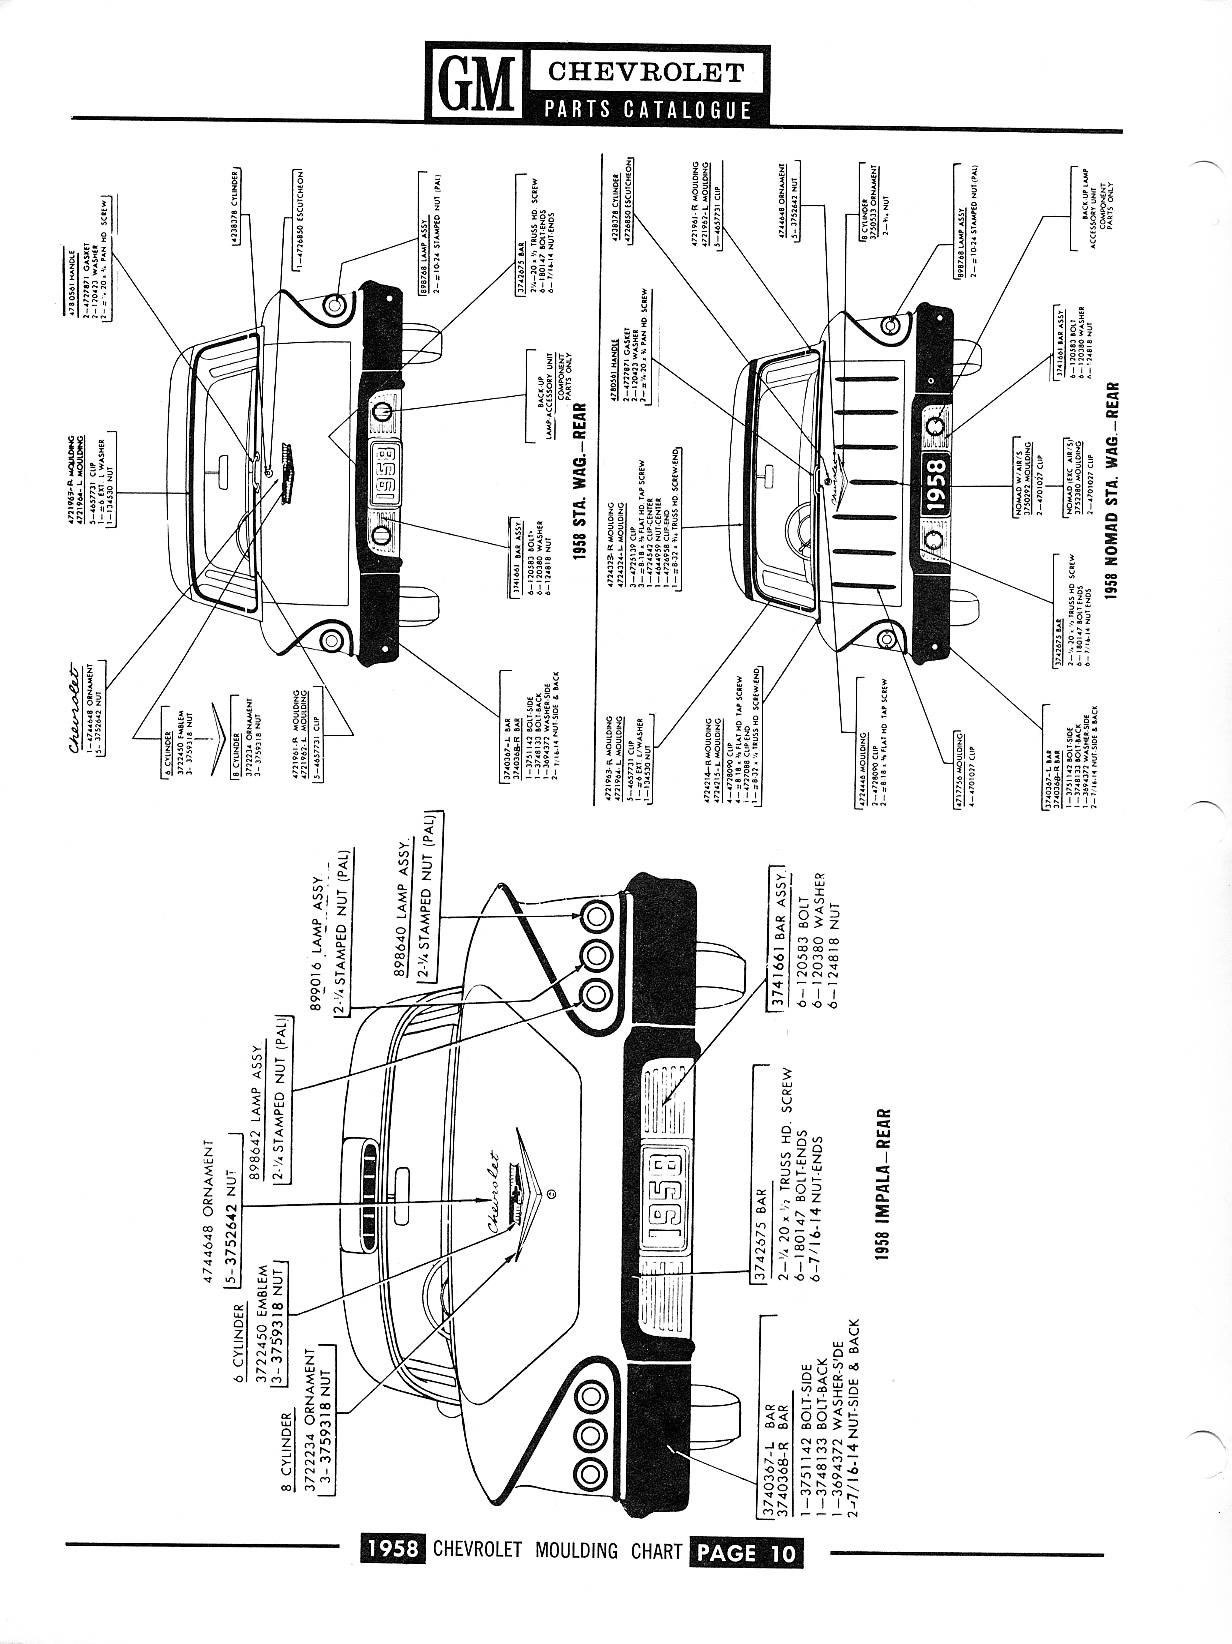 RepairGuideContent likewise Watch moreover Lincoln Continental Convertible Late furthermore 1969 1976 Corvette Heater Control Cable Routing Wac together with 1967 Camaro Tail Lights Wiring Diagram. on 1960 ford f100 wiring diagram